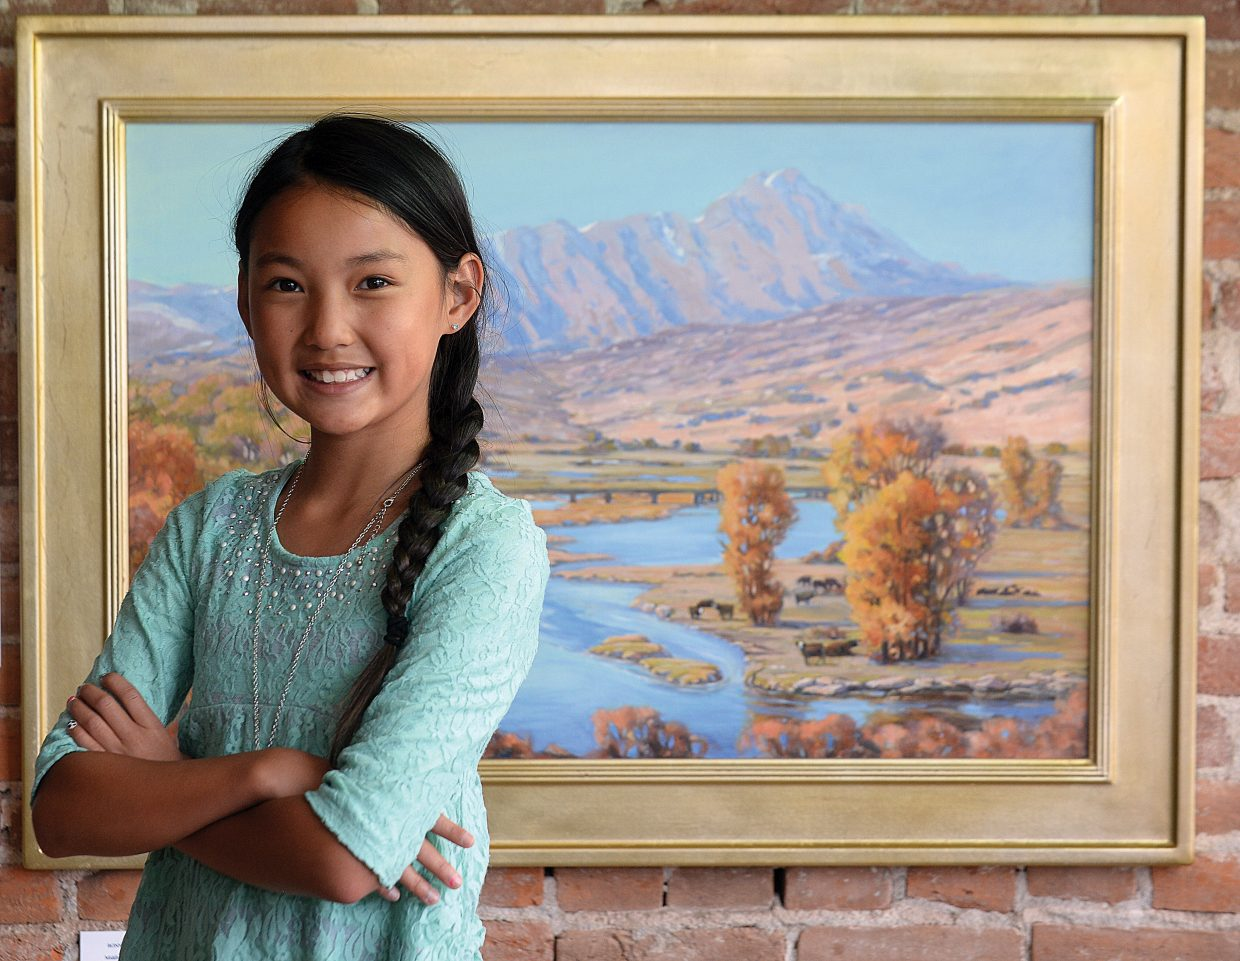 Emerald Mountain School student Piper Eivins found inspiration in this art by Bonnie McGee on display at the Circle & Gallery in Steamboat Springs.